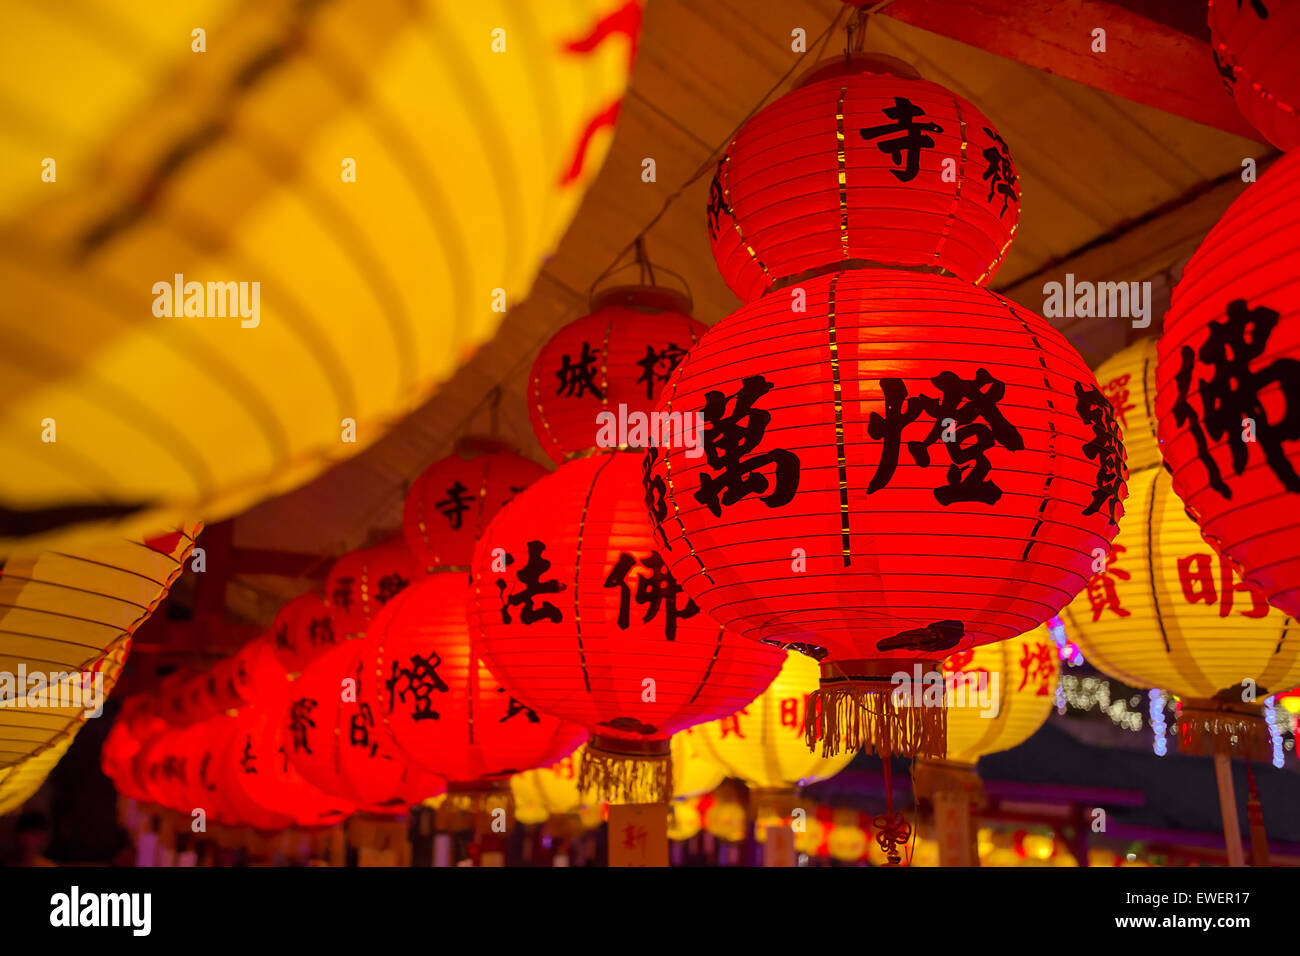 Chinese New Year red and yellow paper lanterns - Stock Image